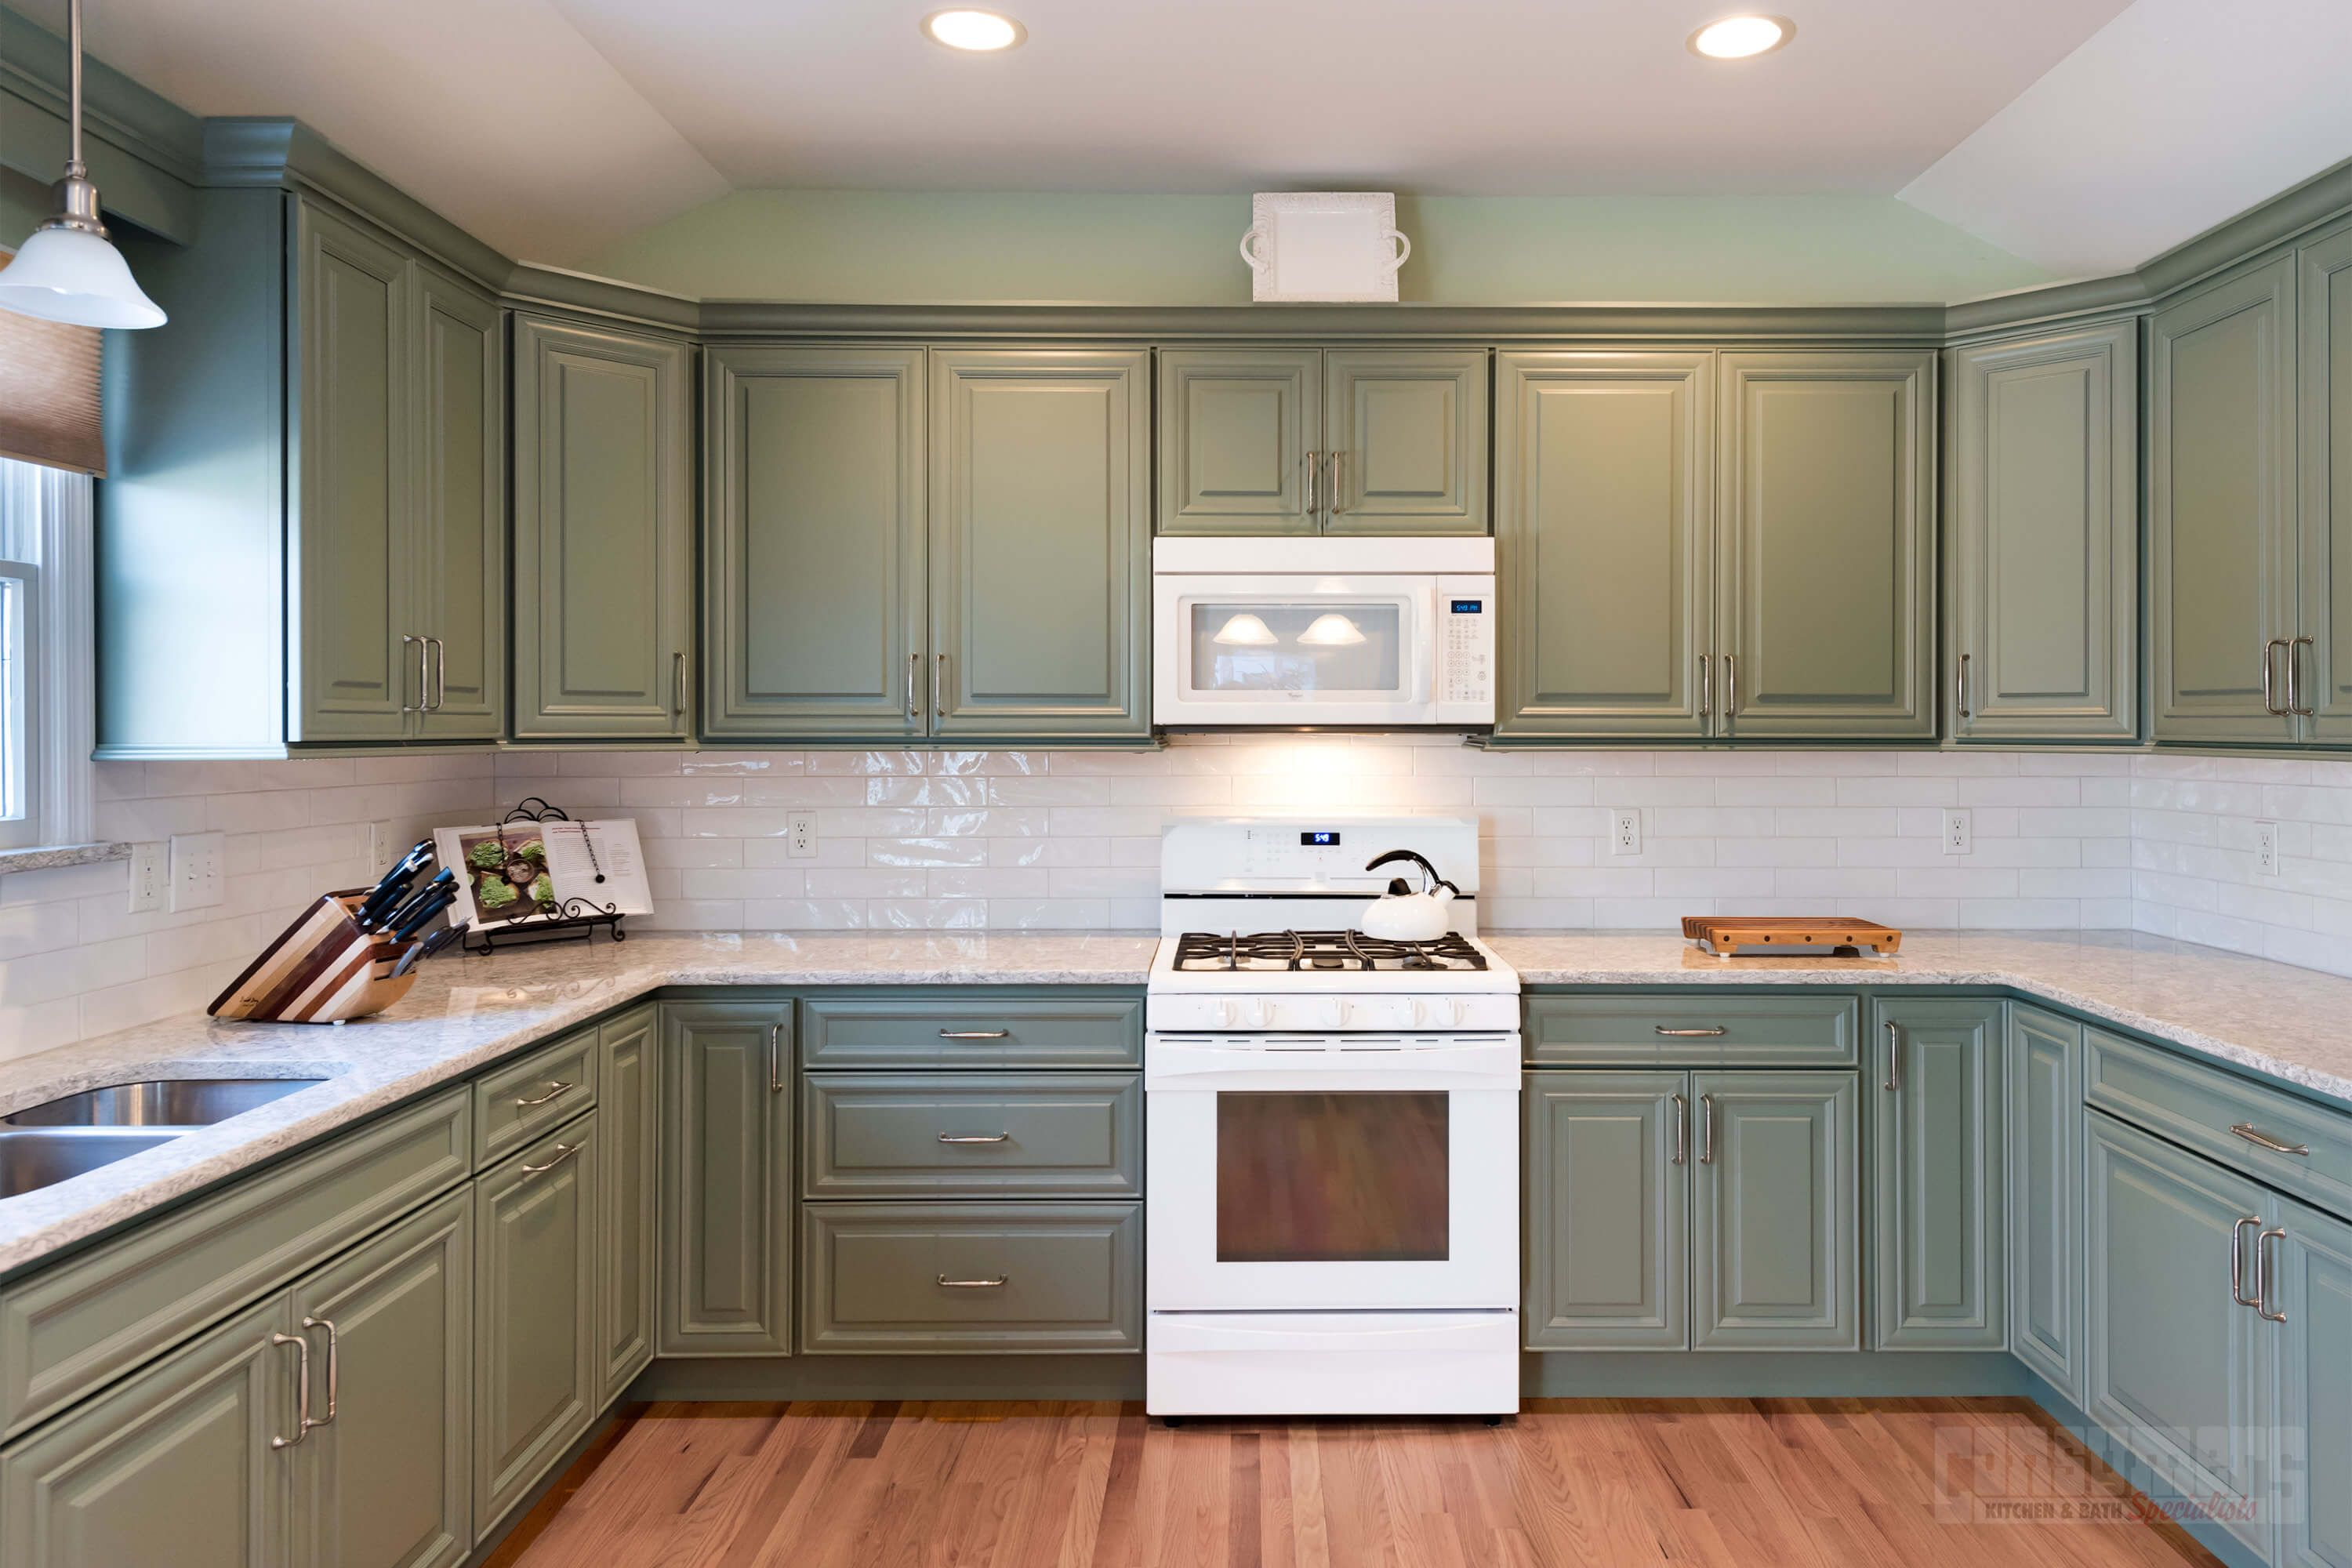 Pin by Isabel Servin on East Marion Moss   Kitchen design ...